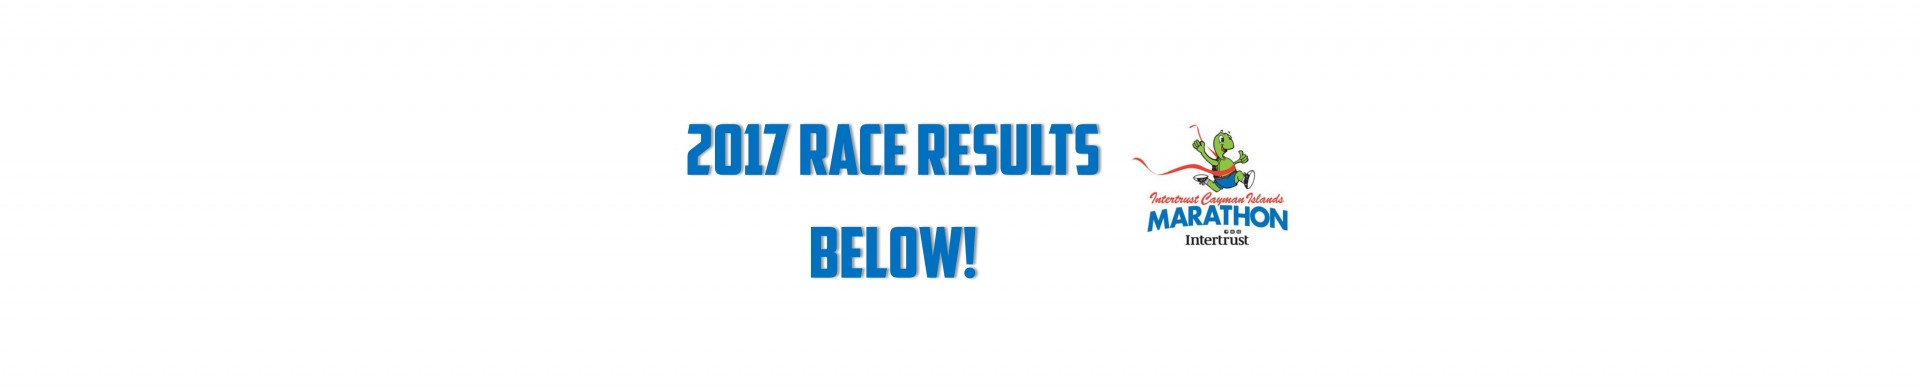 Race Results 2017